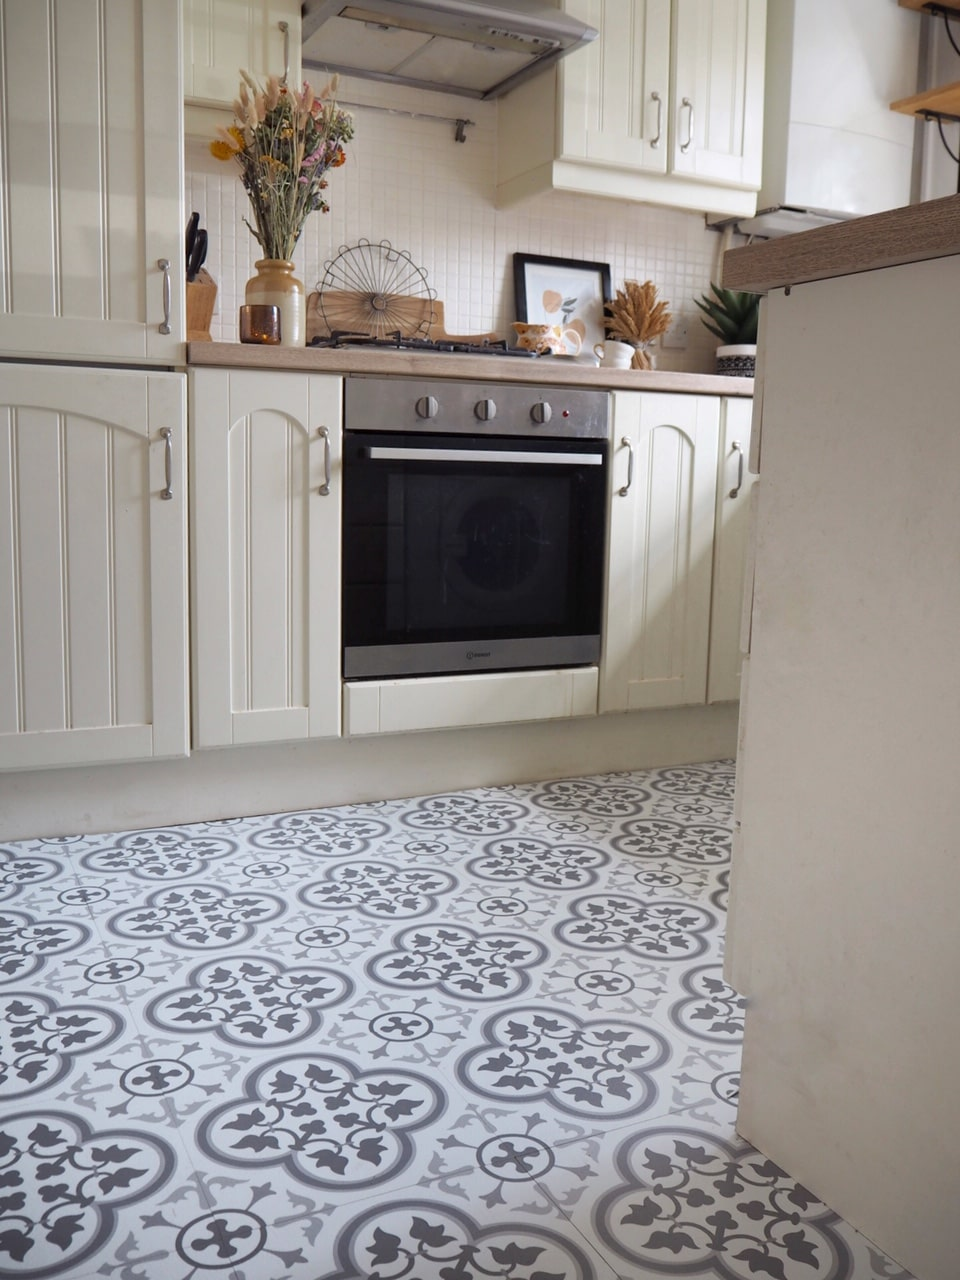 How to lay self-adhesive pell and stick vinyl floor tiles from Wall and Floor Pops. Simple budget DIY tutorial to revamp an old floor and give your home a budget makeover. Featuring exactly how I laid vinyl Floor Pops in the Remy pattern in our kitchen. Budget DIY project that you can easily do yourself.